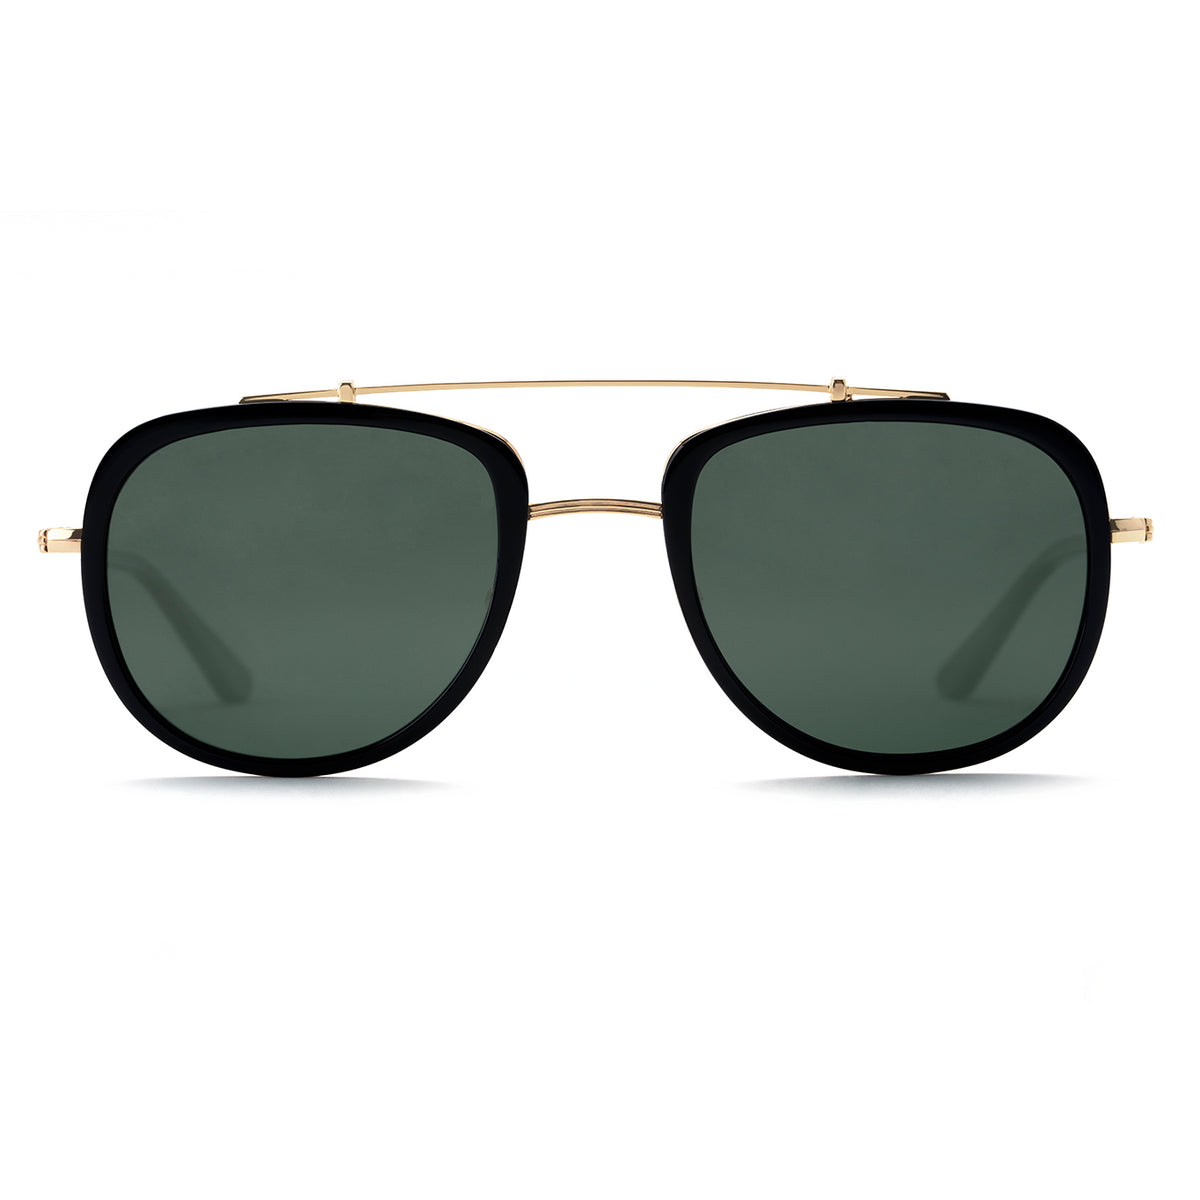 BRETON | Black Polarized 24K handcrafted acetate sunglasses